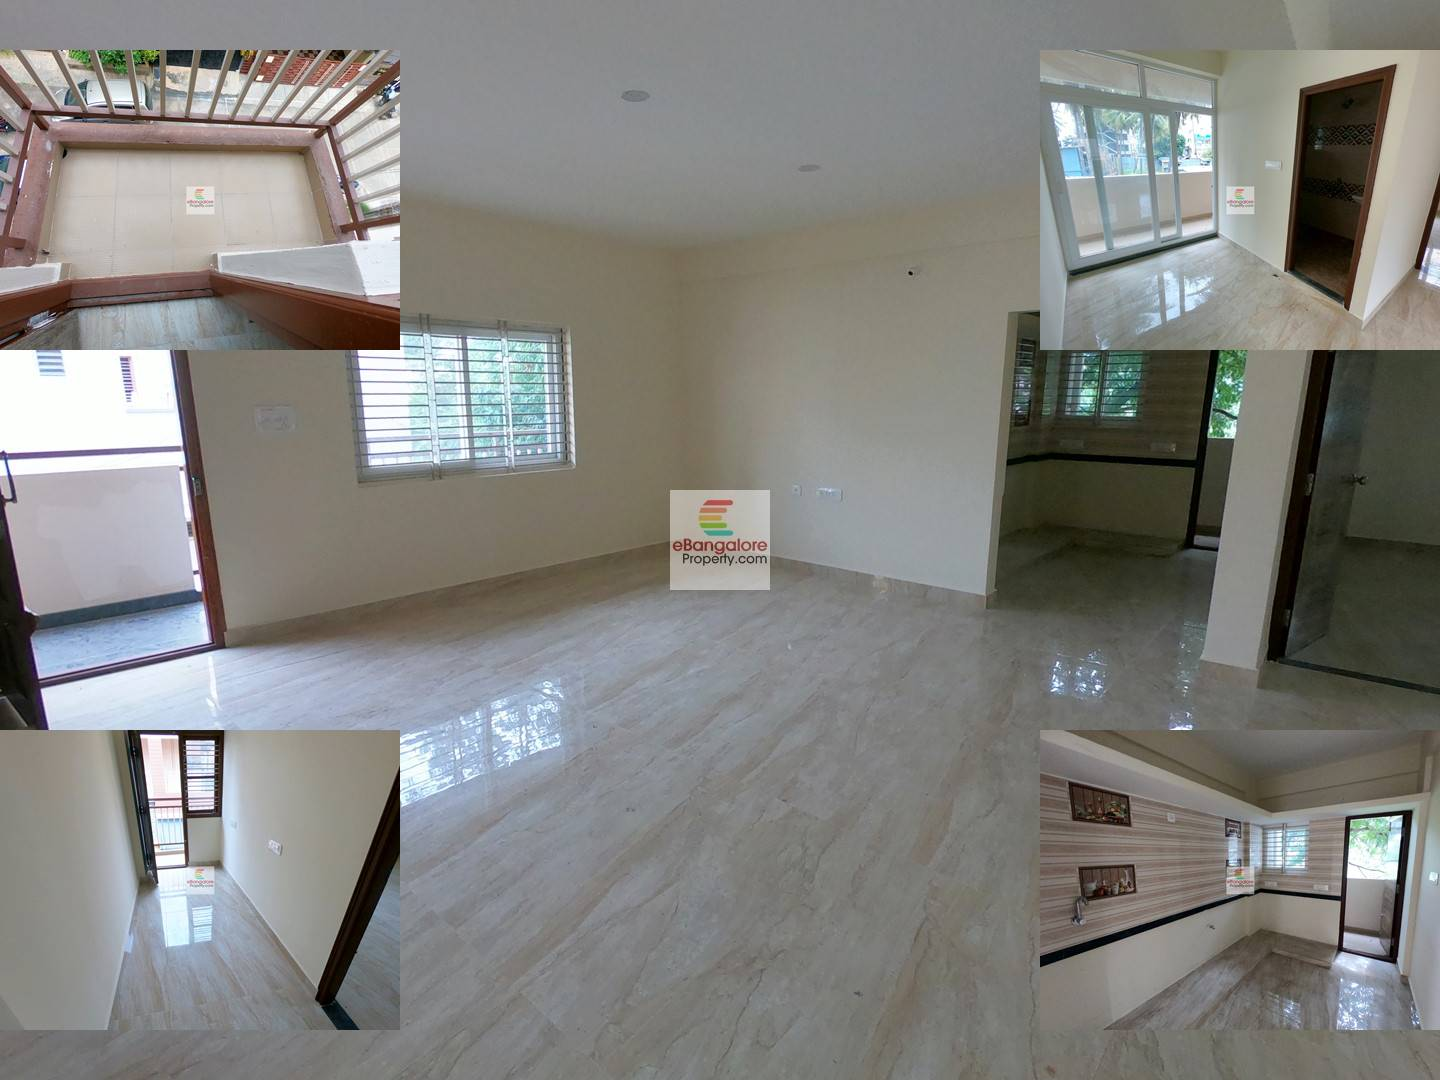 BEL Circle, Doddabommasandra – 3BHK Premium Single Floor Condo For Sale – 1.2 KM from Ring Road